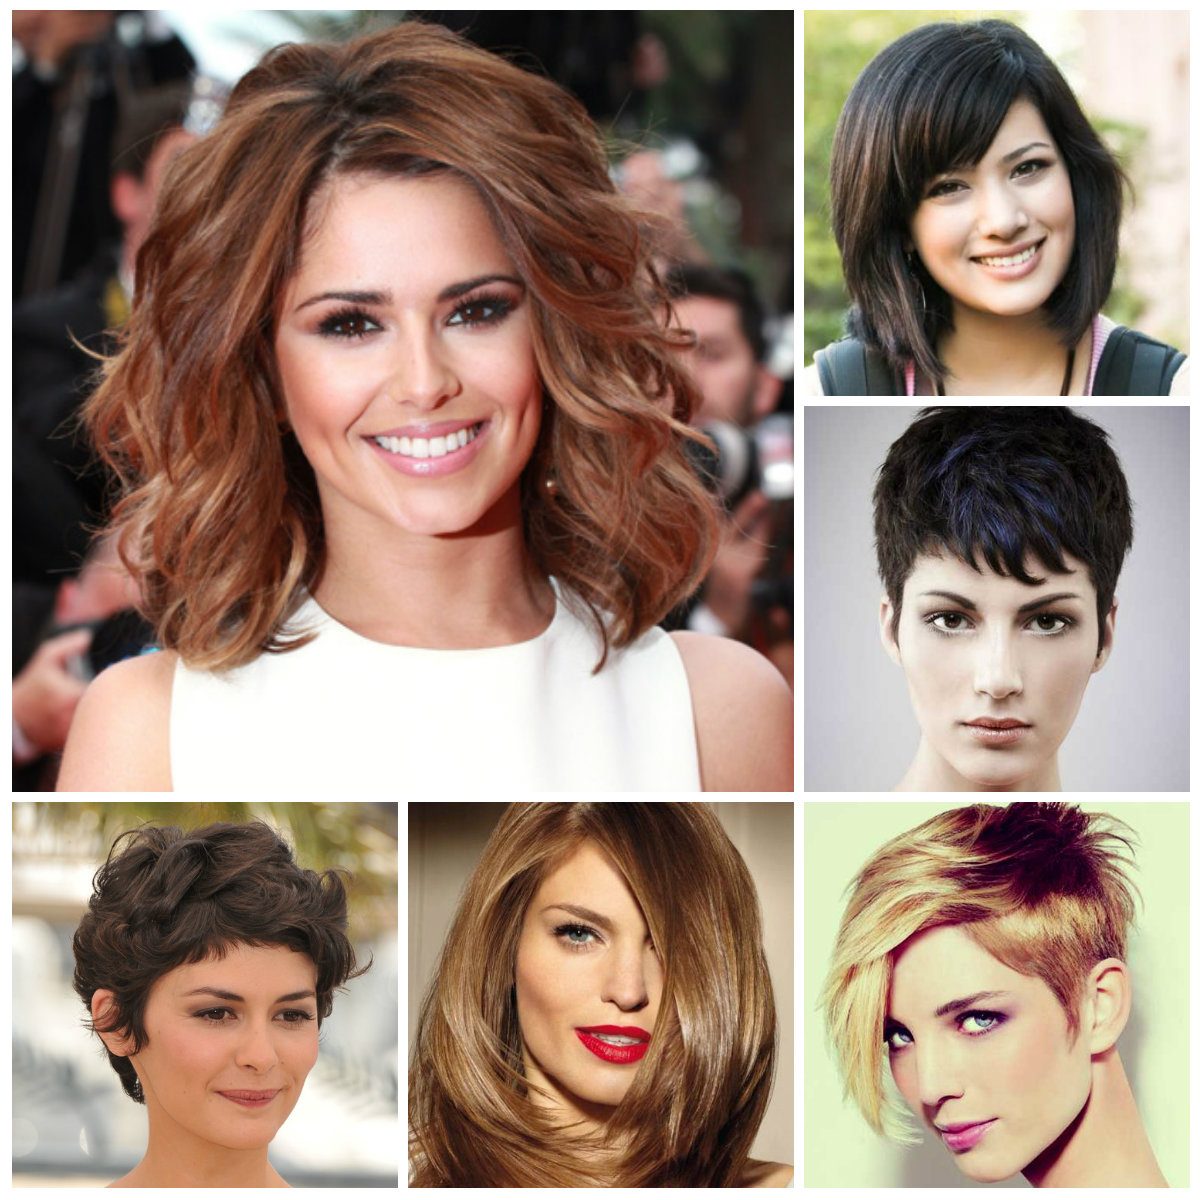 Hairstyles For Women (View 9 of 20)